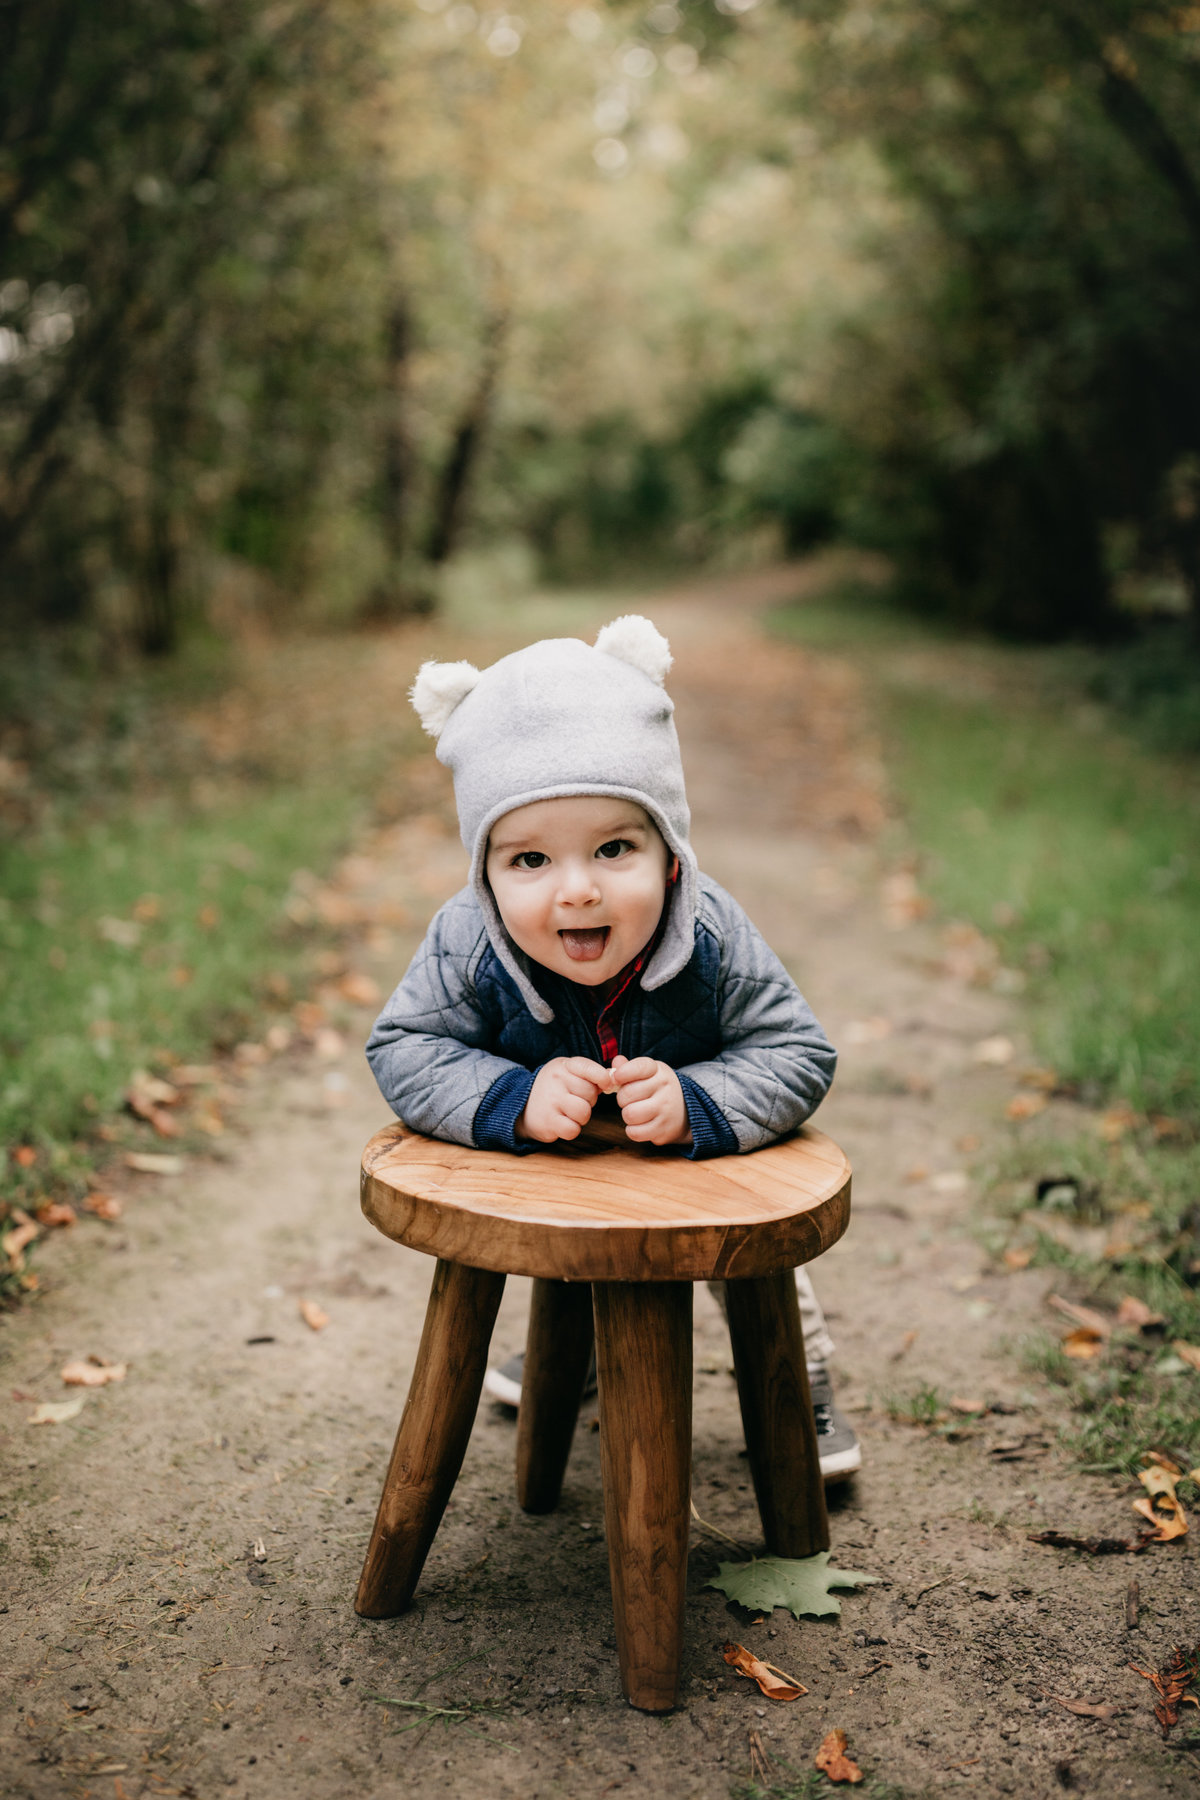 Little boy on a stool in the woods